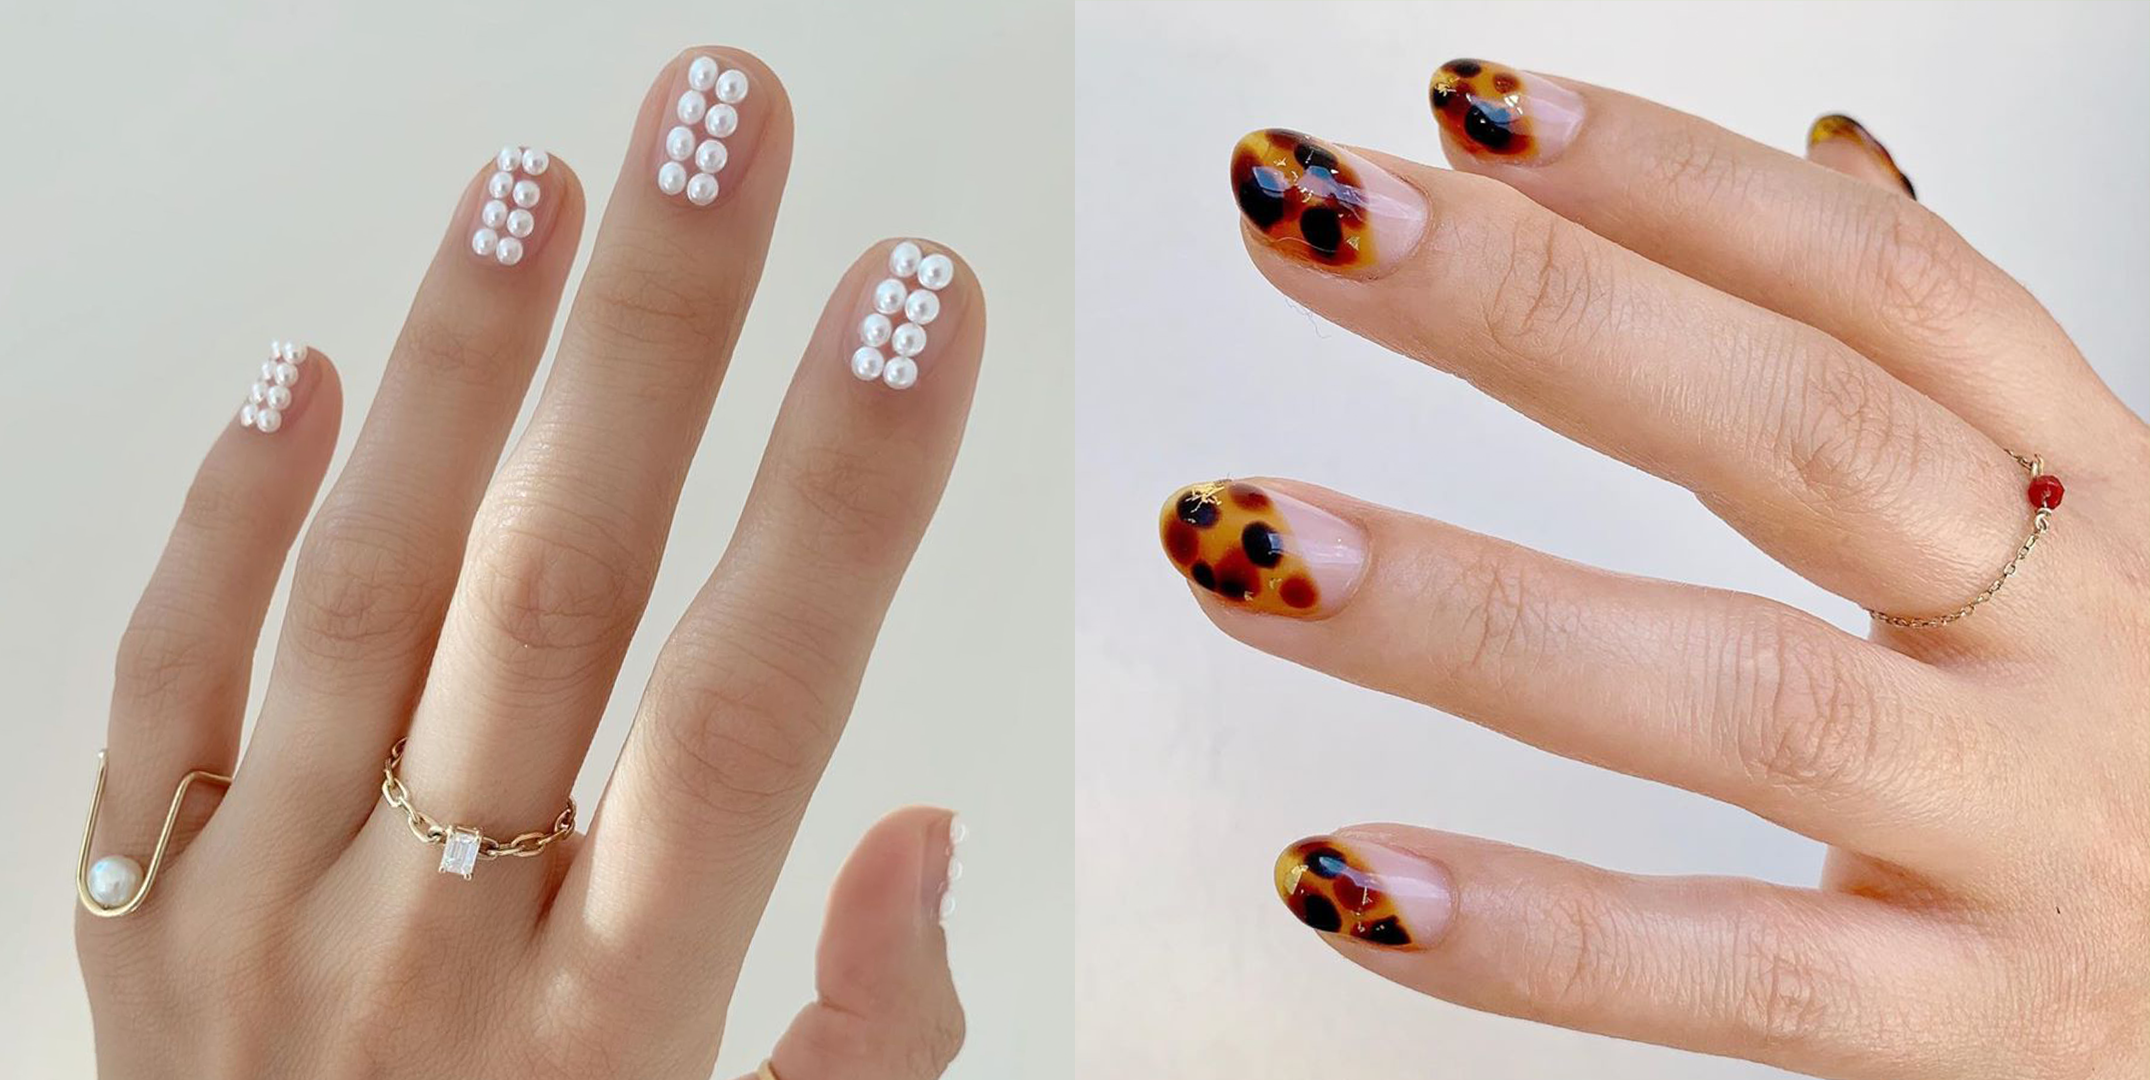 10 winter nail trends for 2019 nail art ideas for fall and winter 10 winter nail trends for 2019 nail